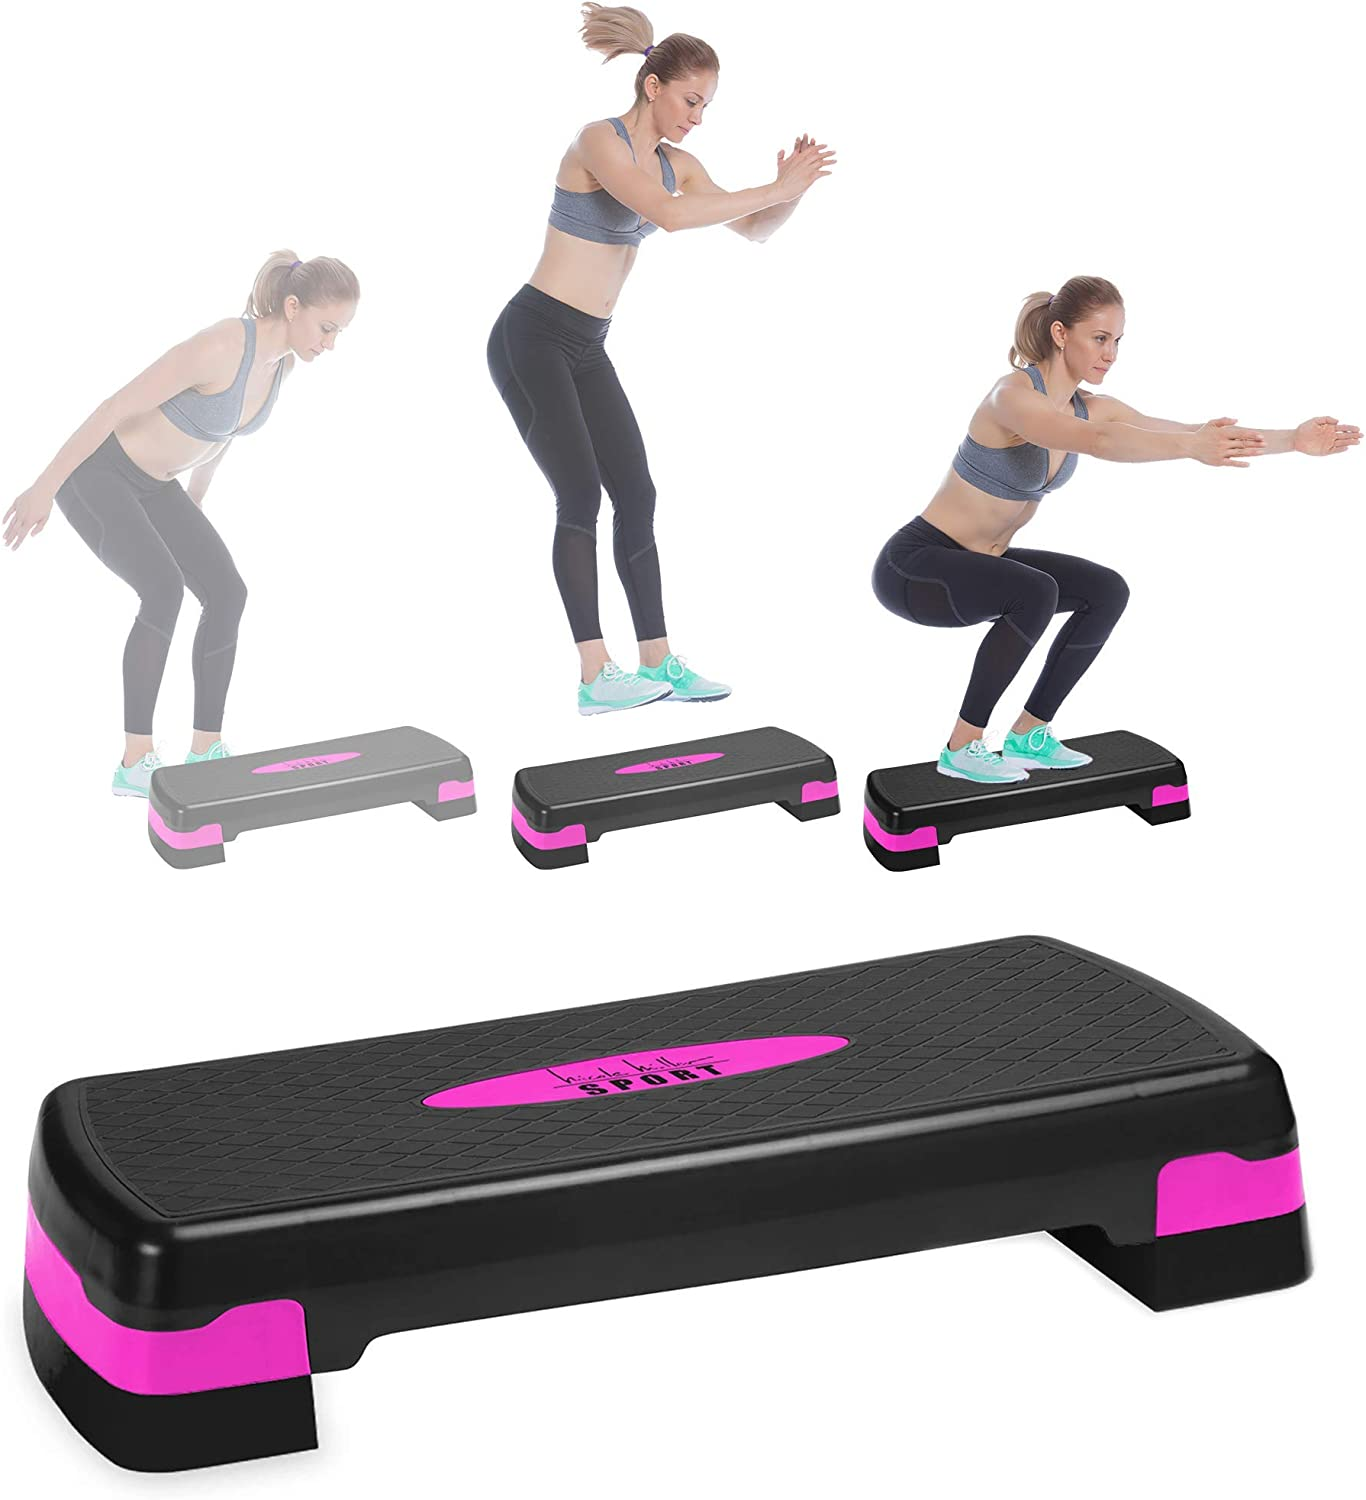 Nicole Miller Aerobic Exercise Step Deck, Adjustable Workout Fitness Stepper Exercise Platform with Risers